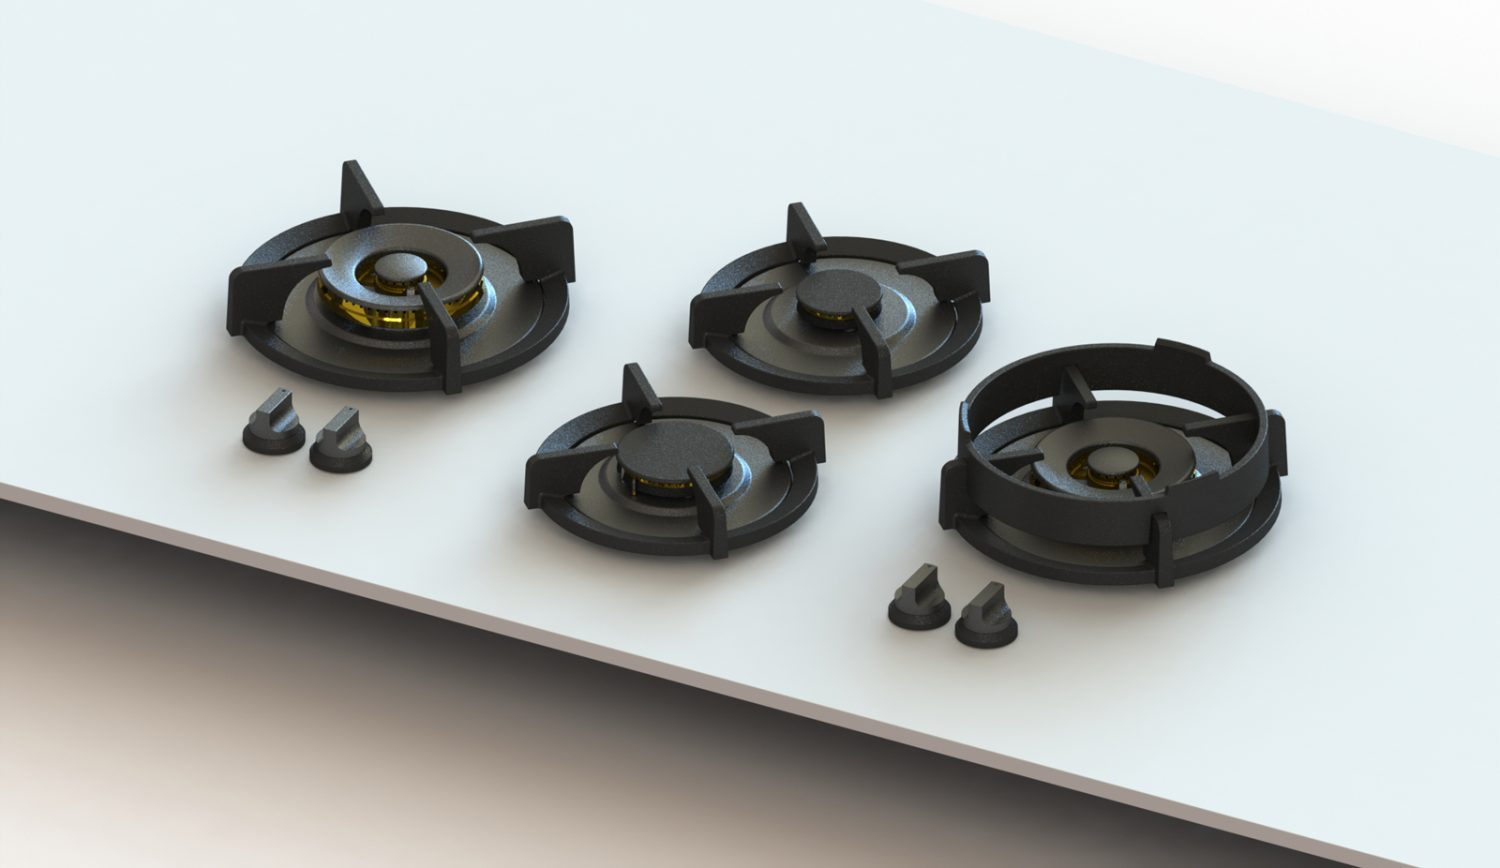 PITT-cooking-4-burners-Dempo-Professional-Side-1500x868